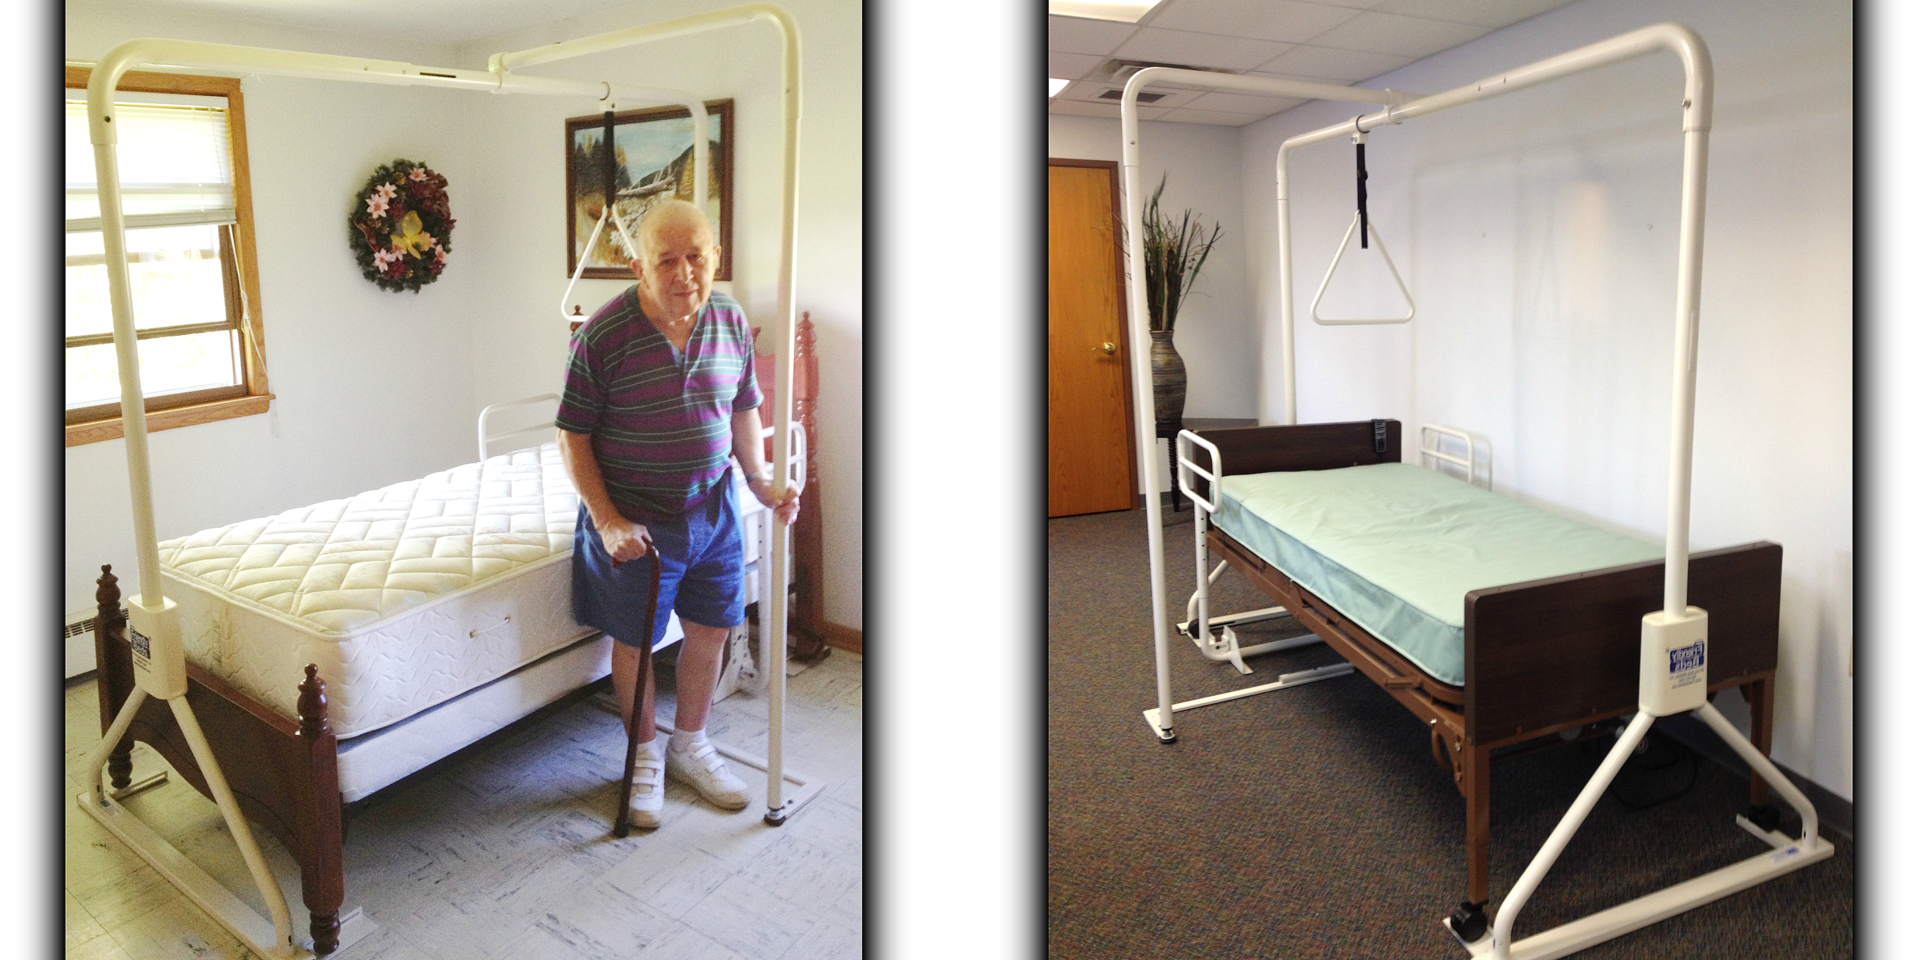 Bed Trapeze, Bed Pole for Hospital Bed